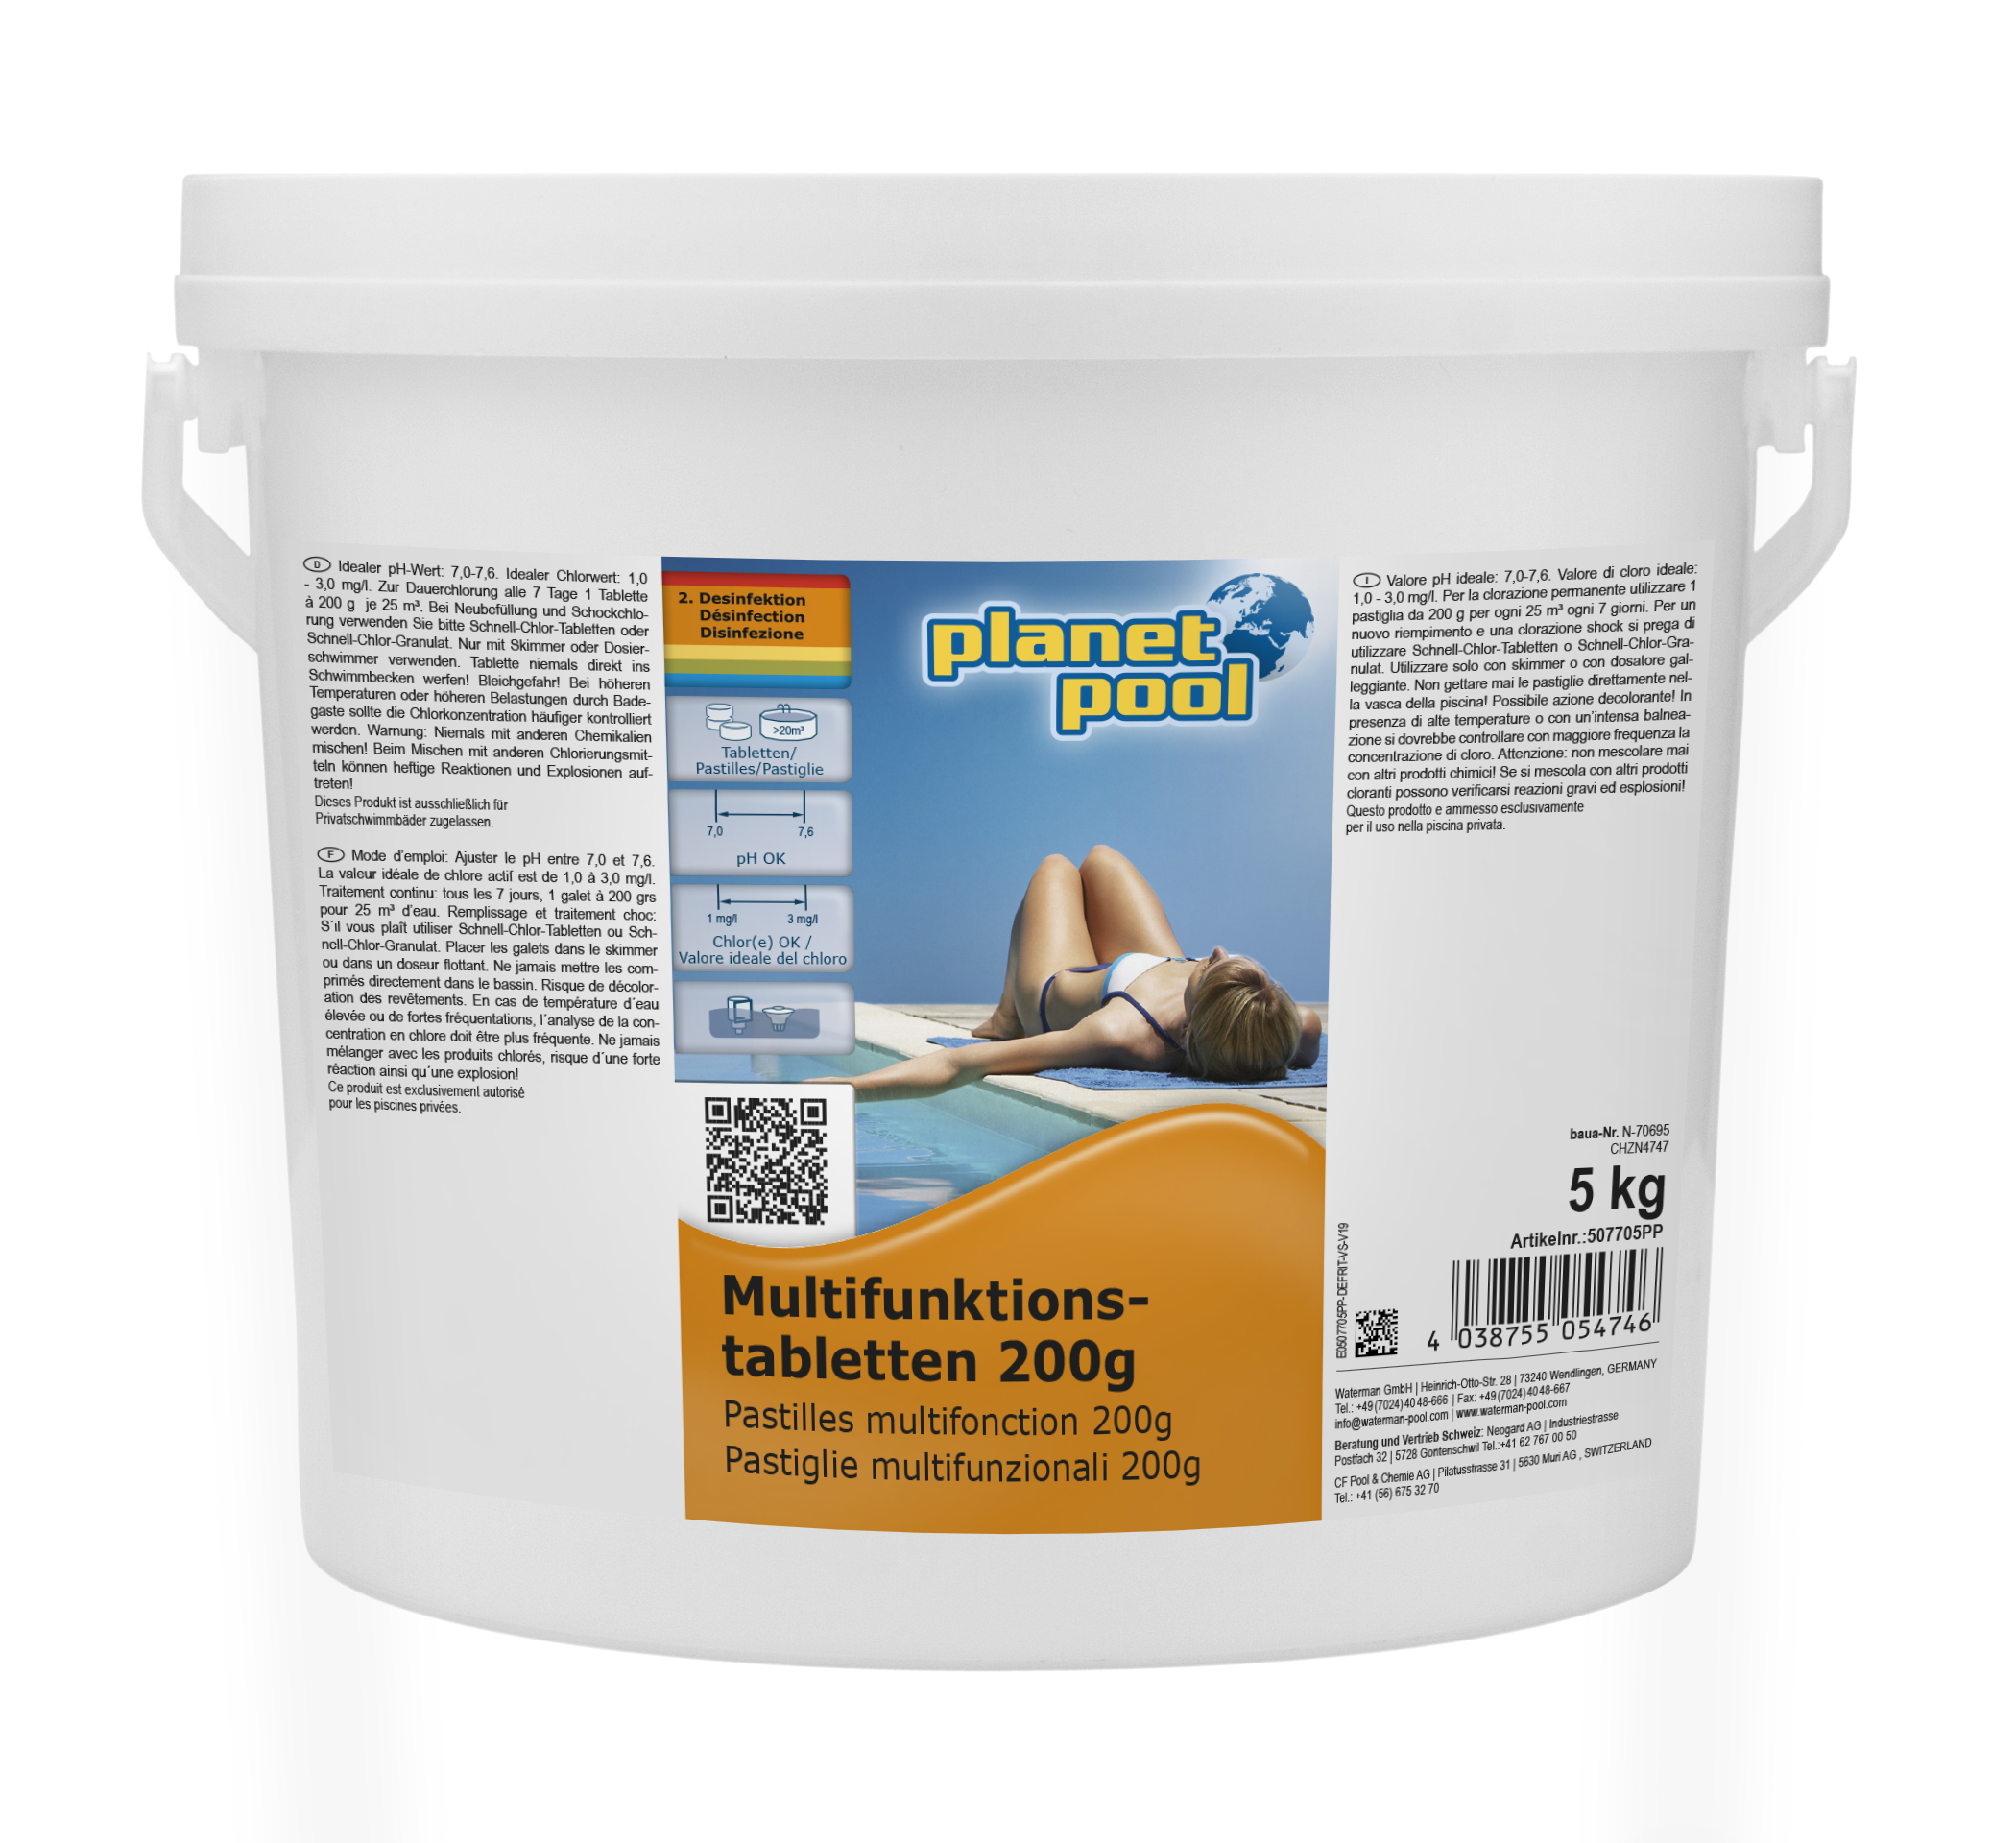 PLANET POOL Langzeit-Multifunktions-Tabletten 200 g, 5 kg